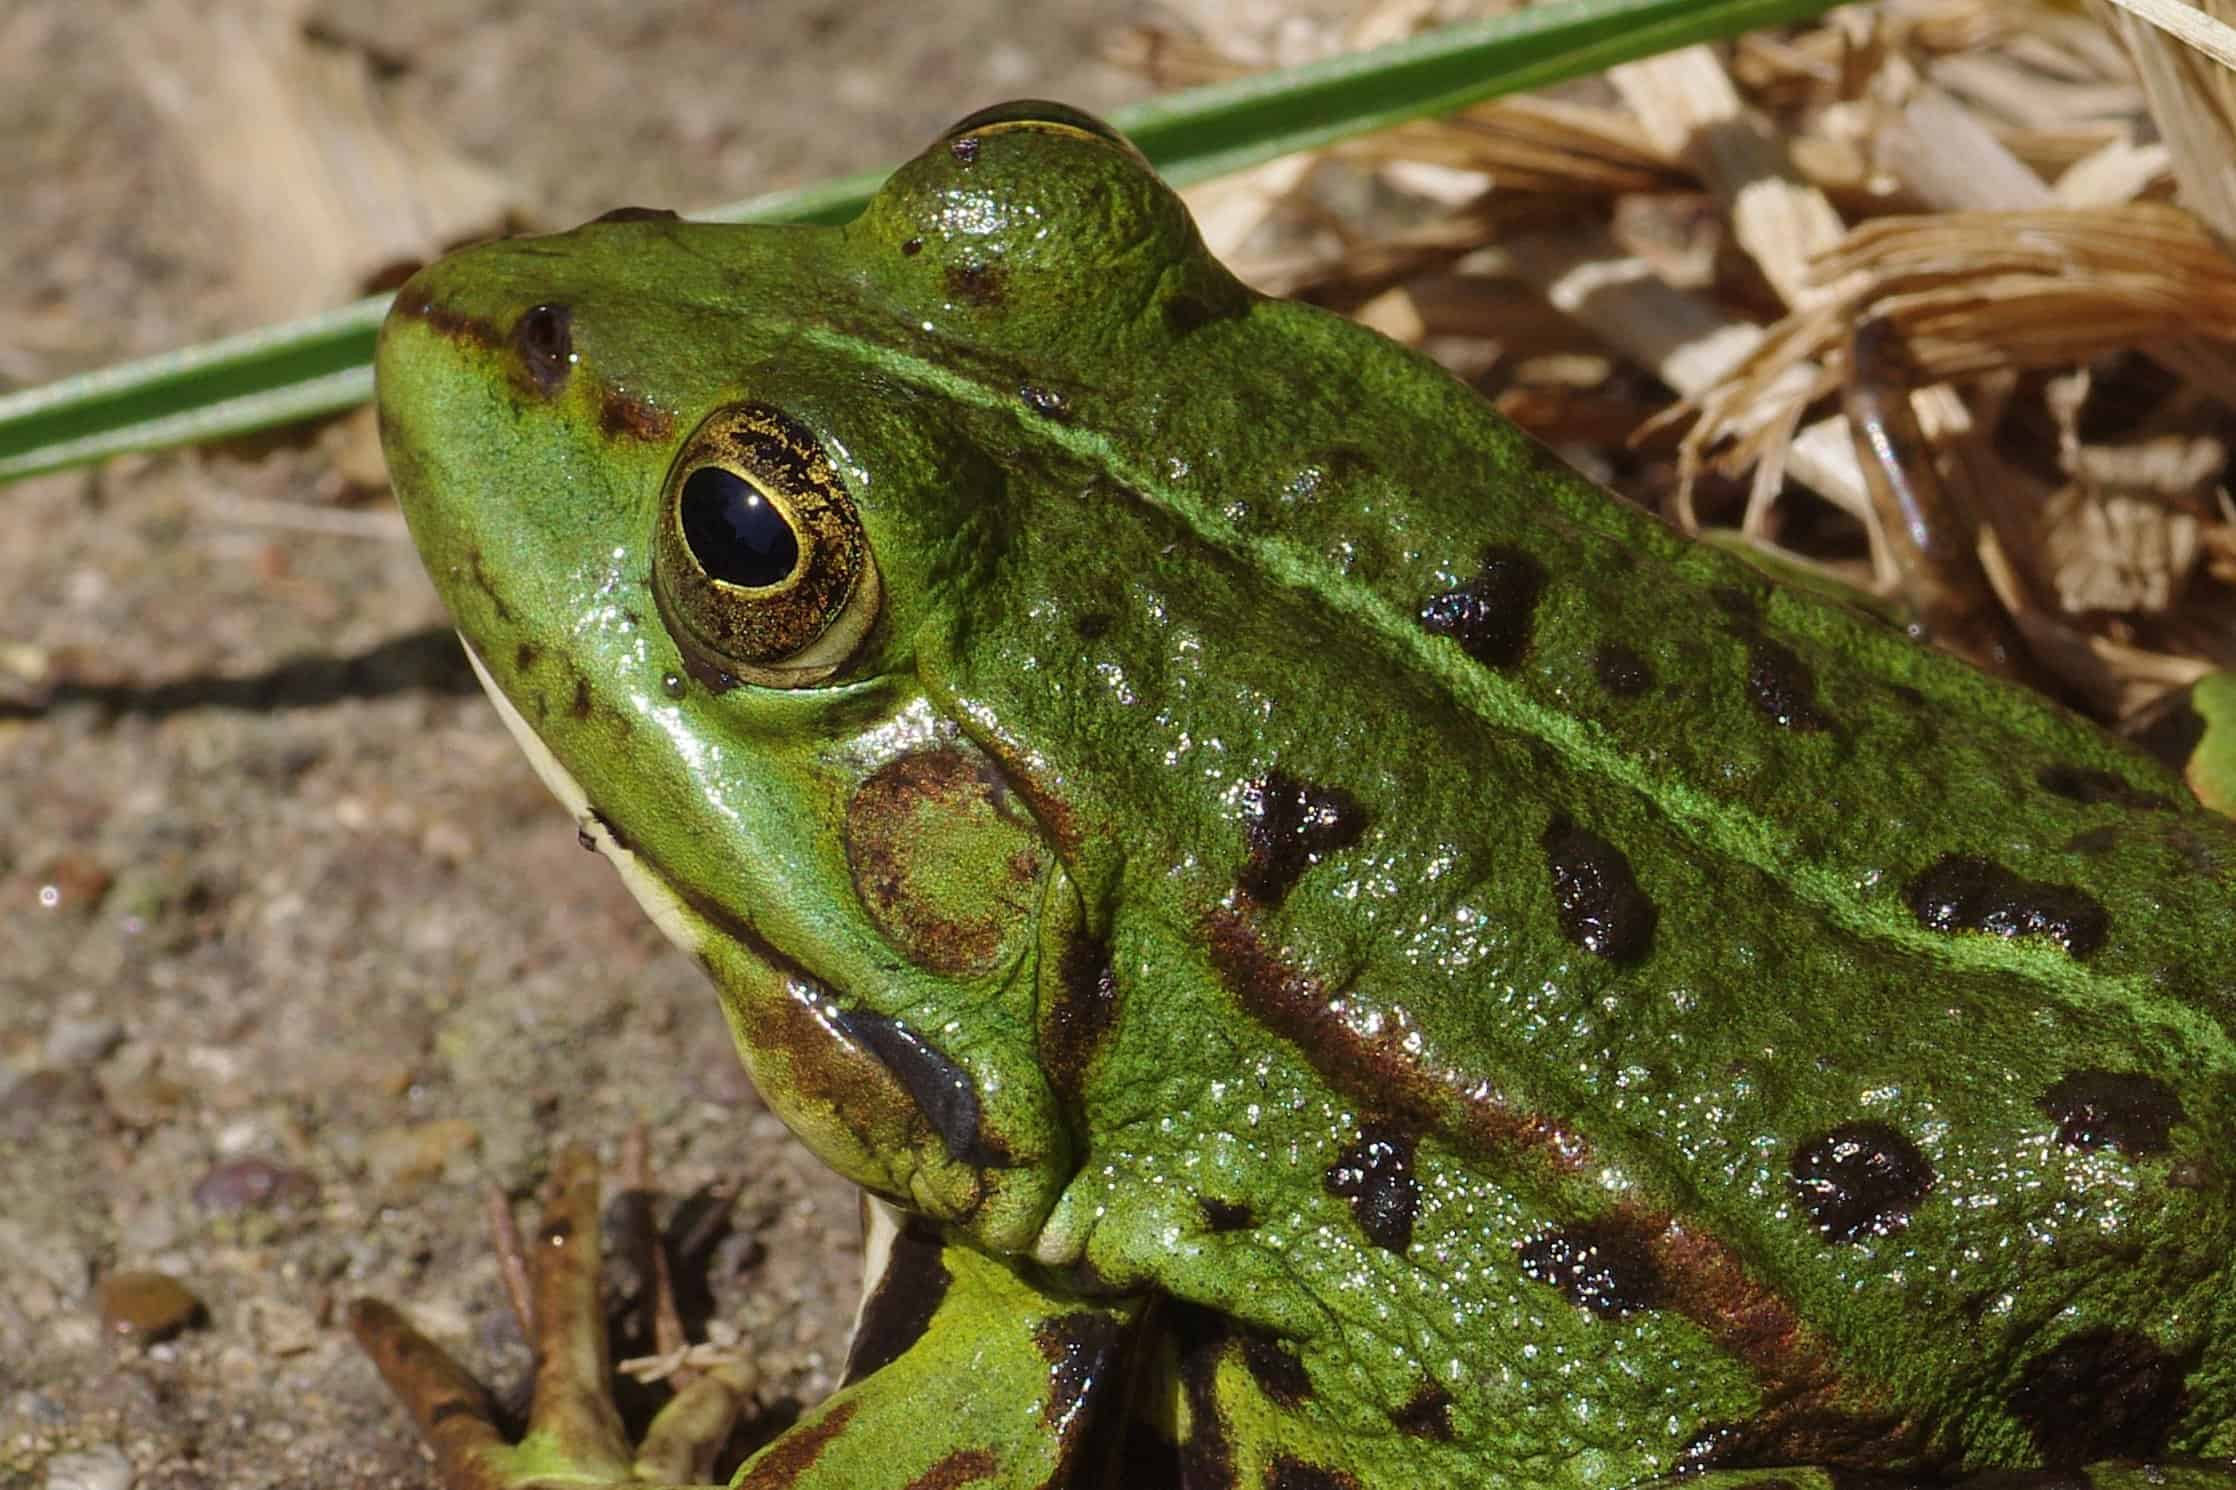 A Mouth With Legs - The Argentine Horned Frog